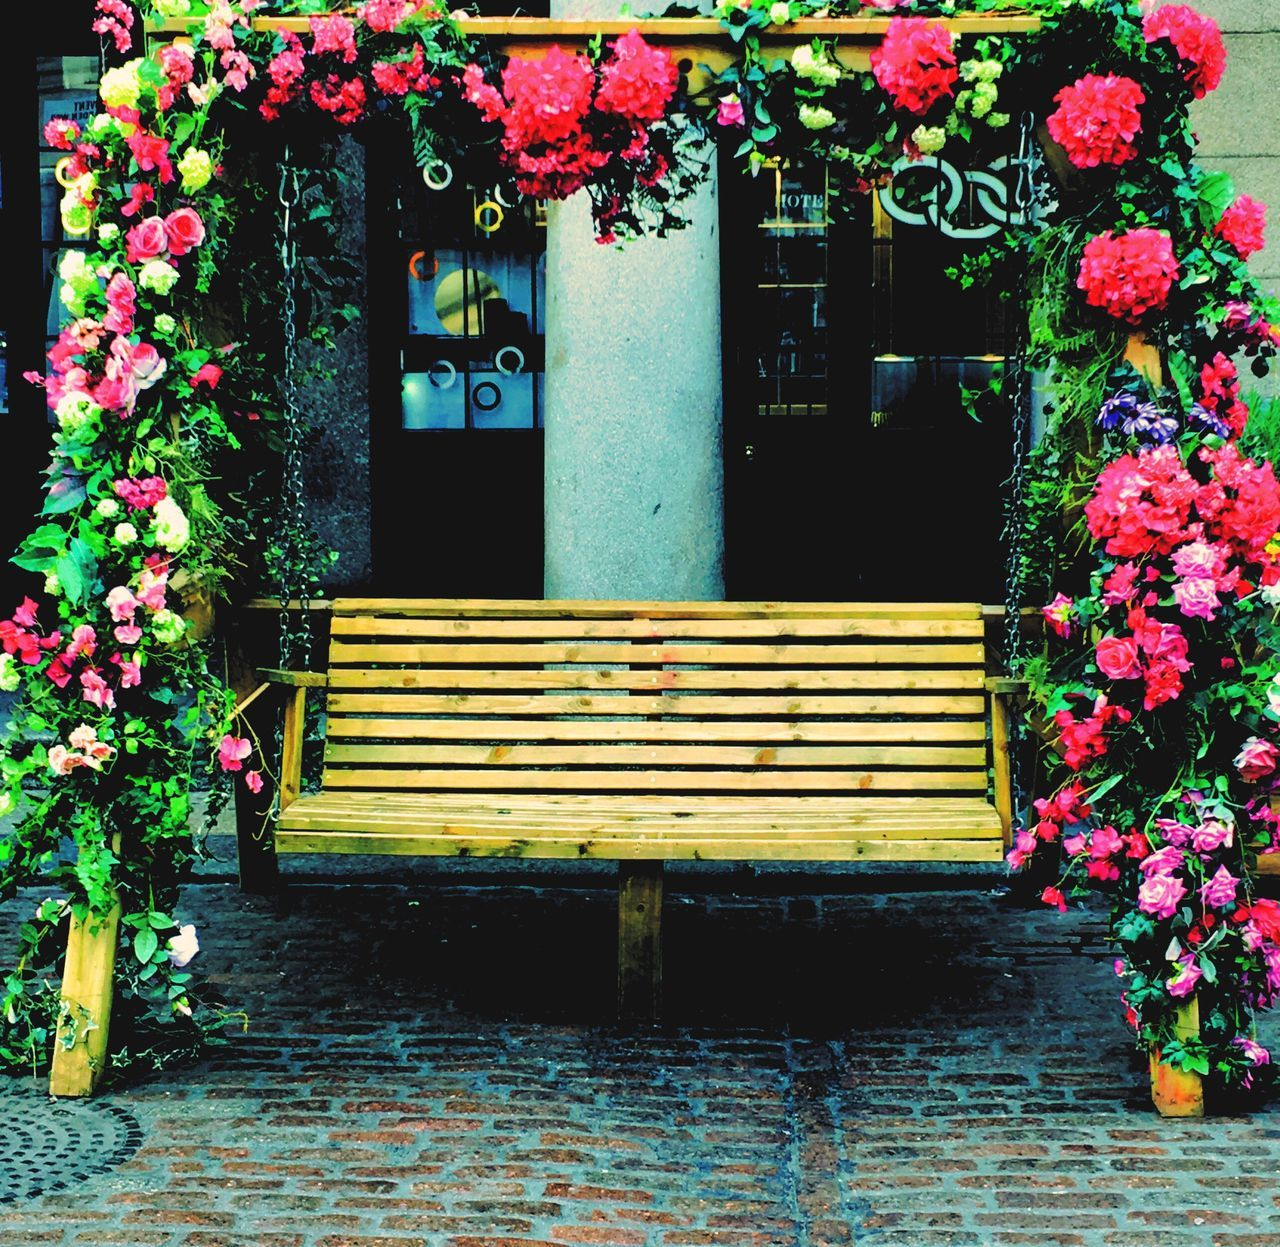 London LONDON❤ Lovers Lovers Bench Covent Garden  Empty Lost Love